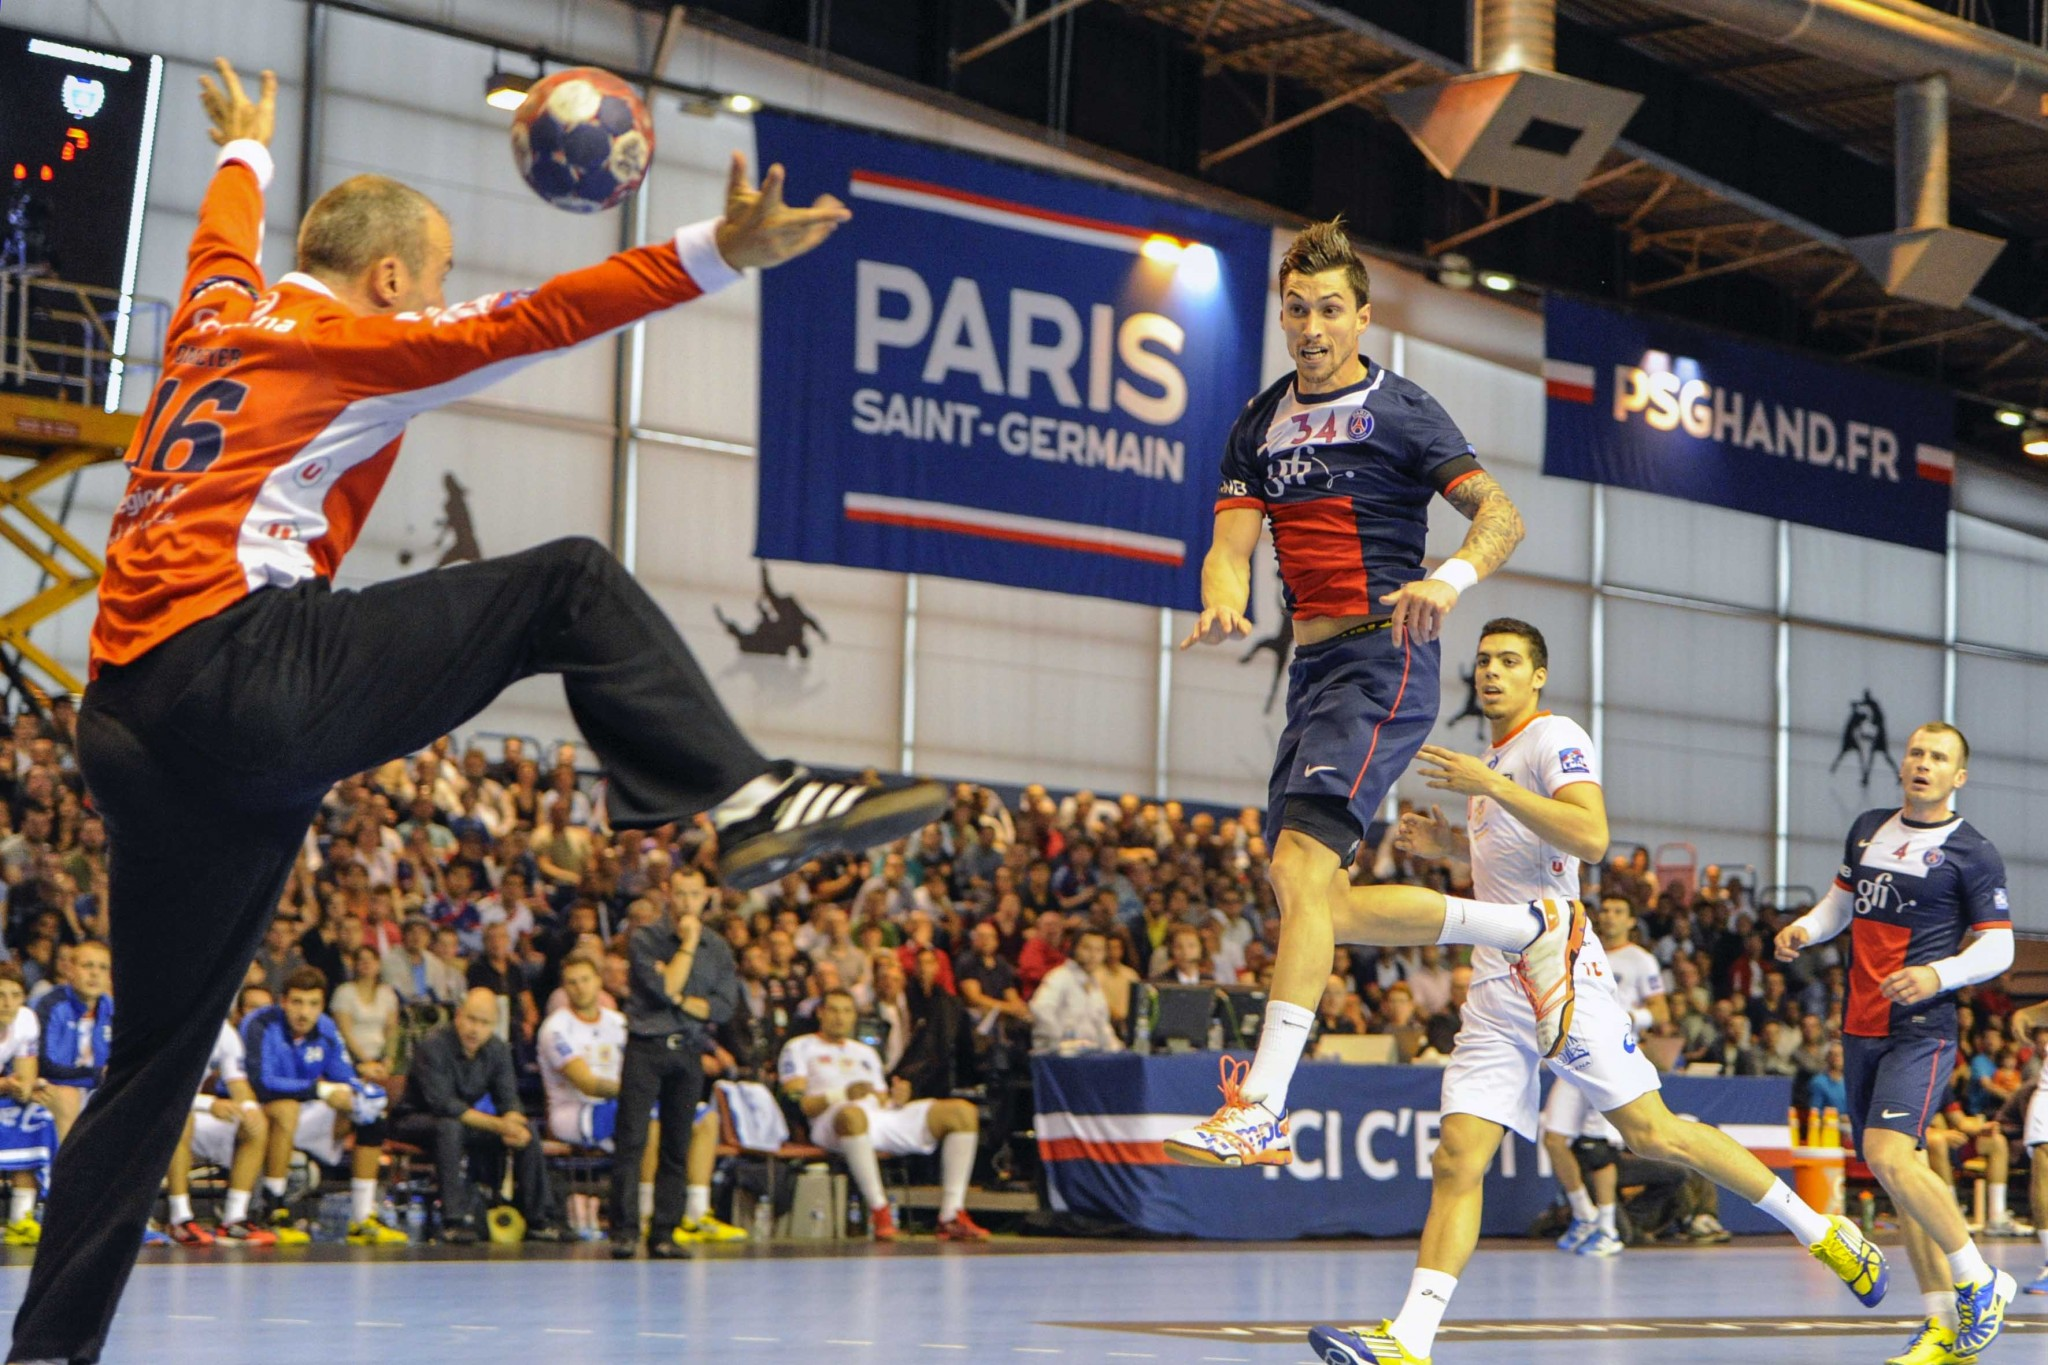 Samuel Honrubia (PSG vs Montpellier, Paris, FRANCE, 2013) Copyright ALAIN GADOFFRE